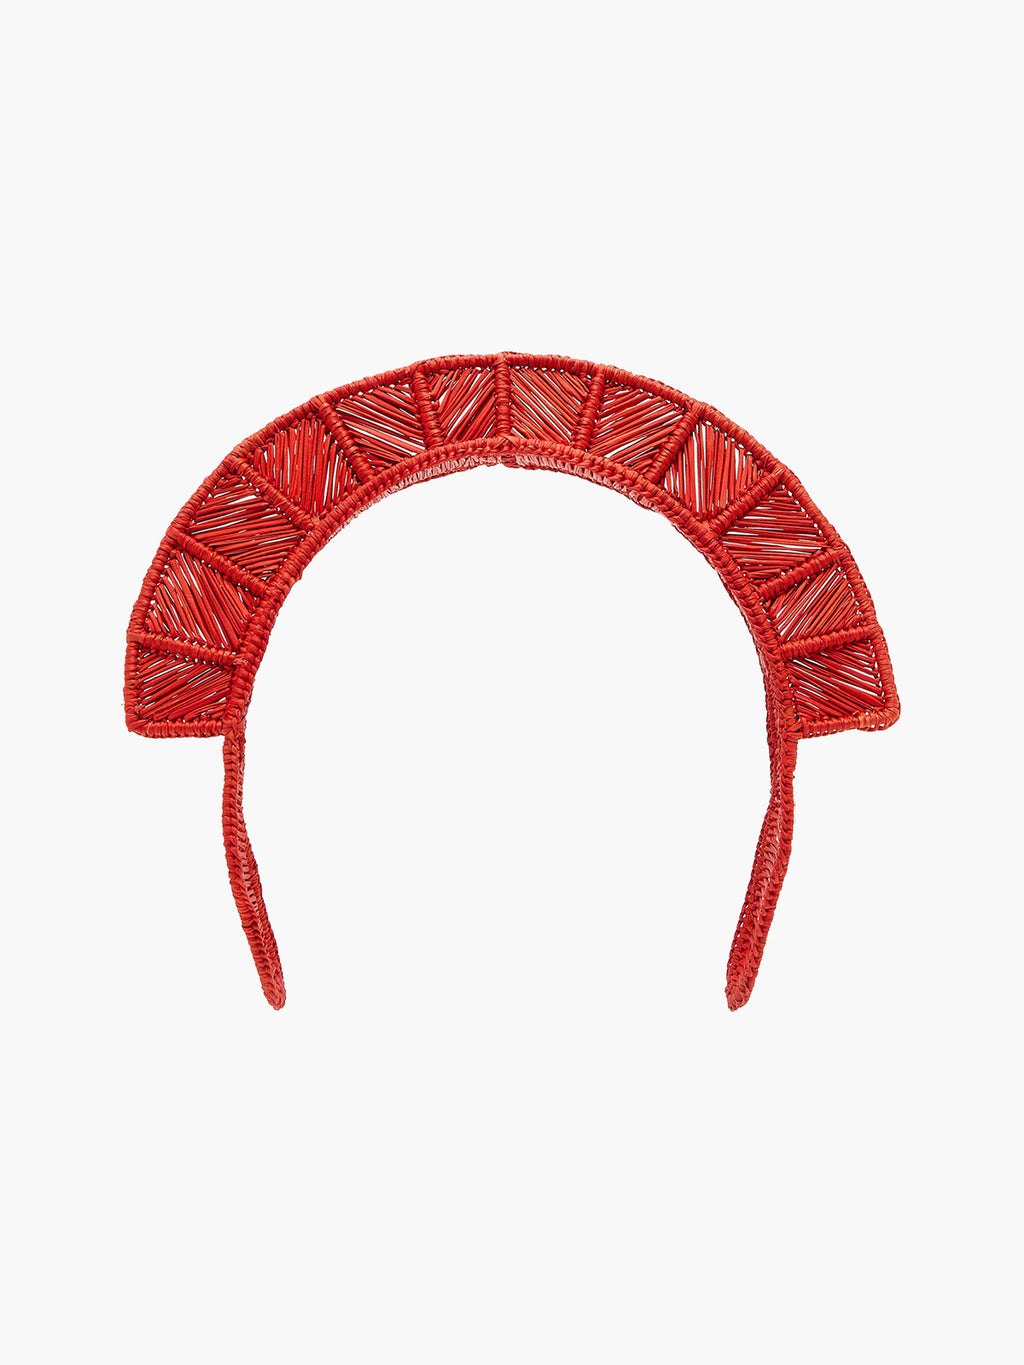 Madera Mini Halo Headpiece